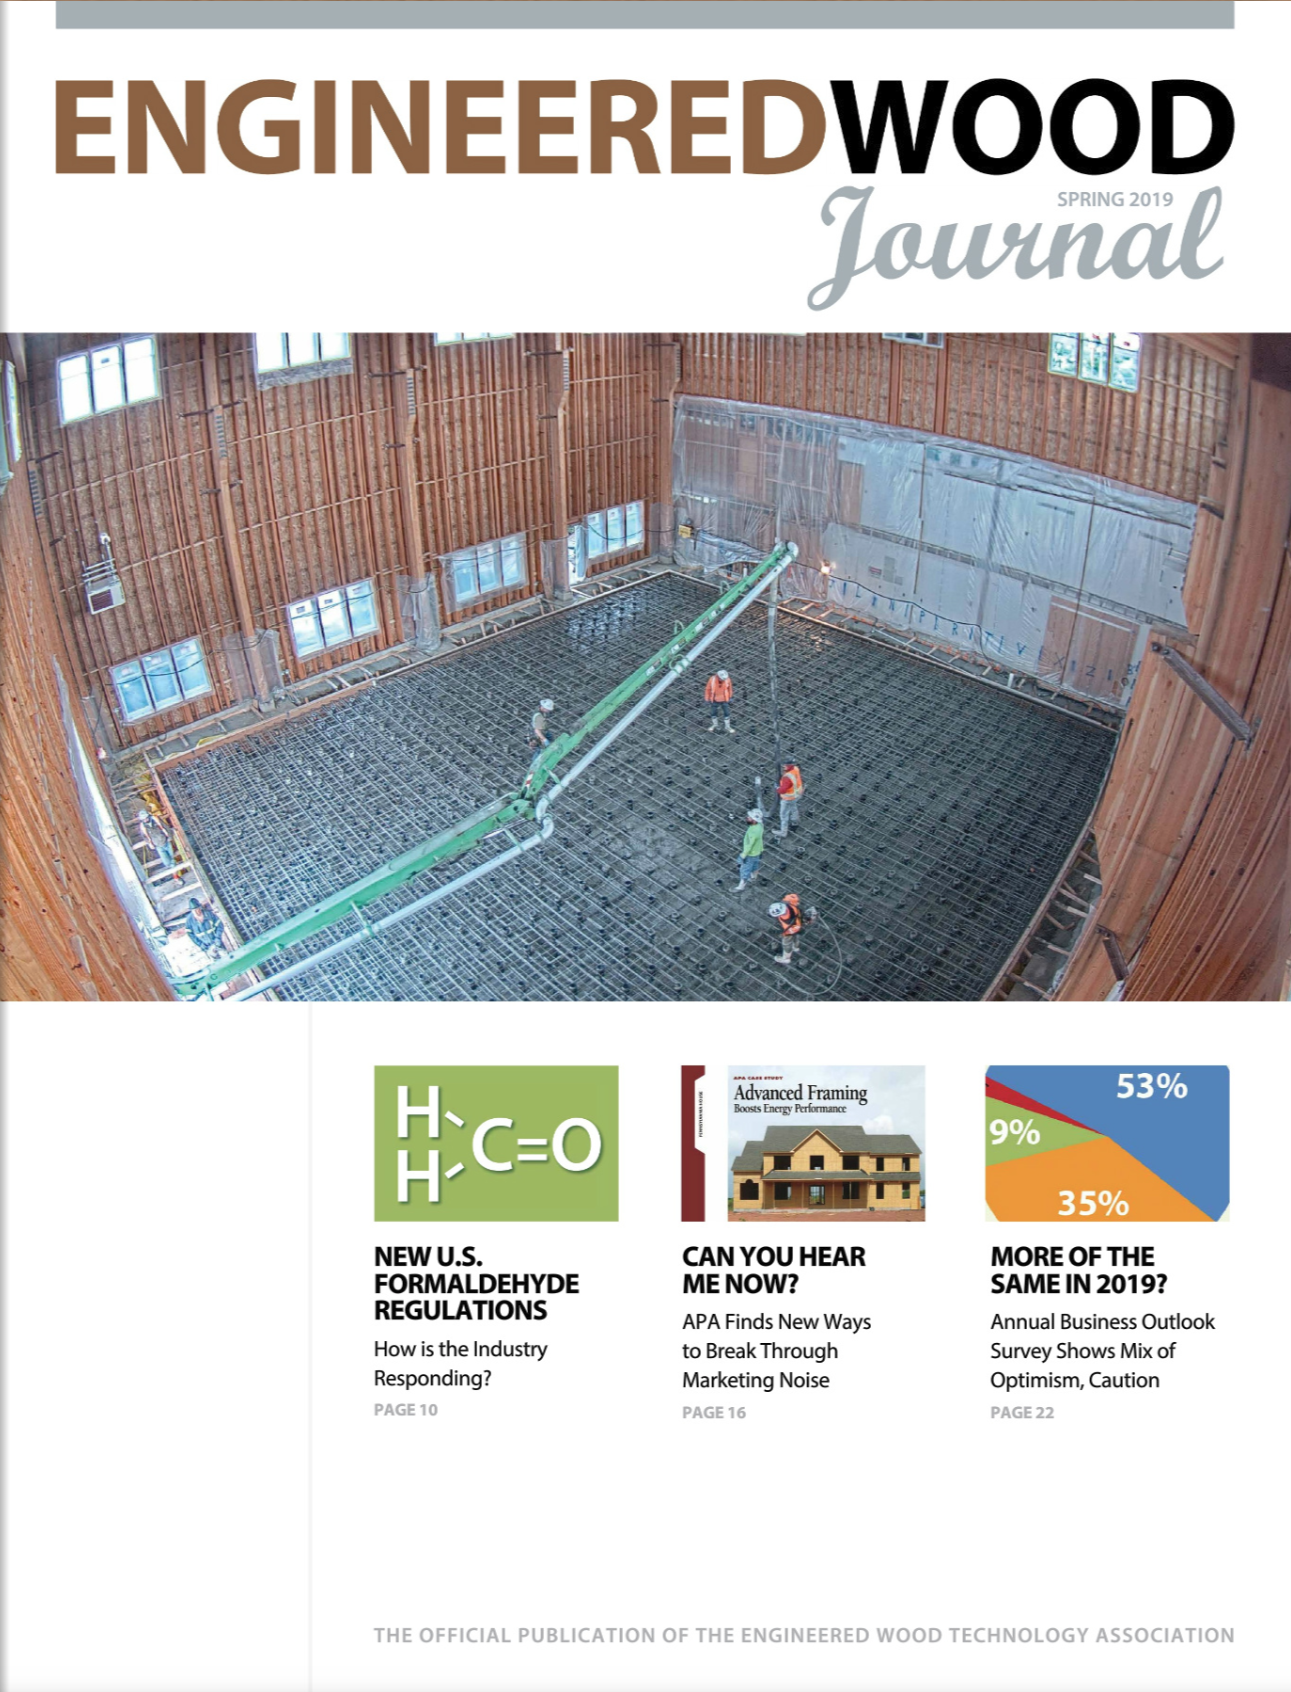 Engineered Wood Journal Spring 2019